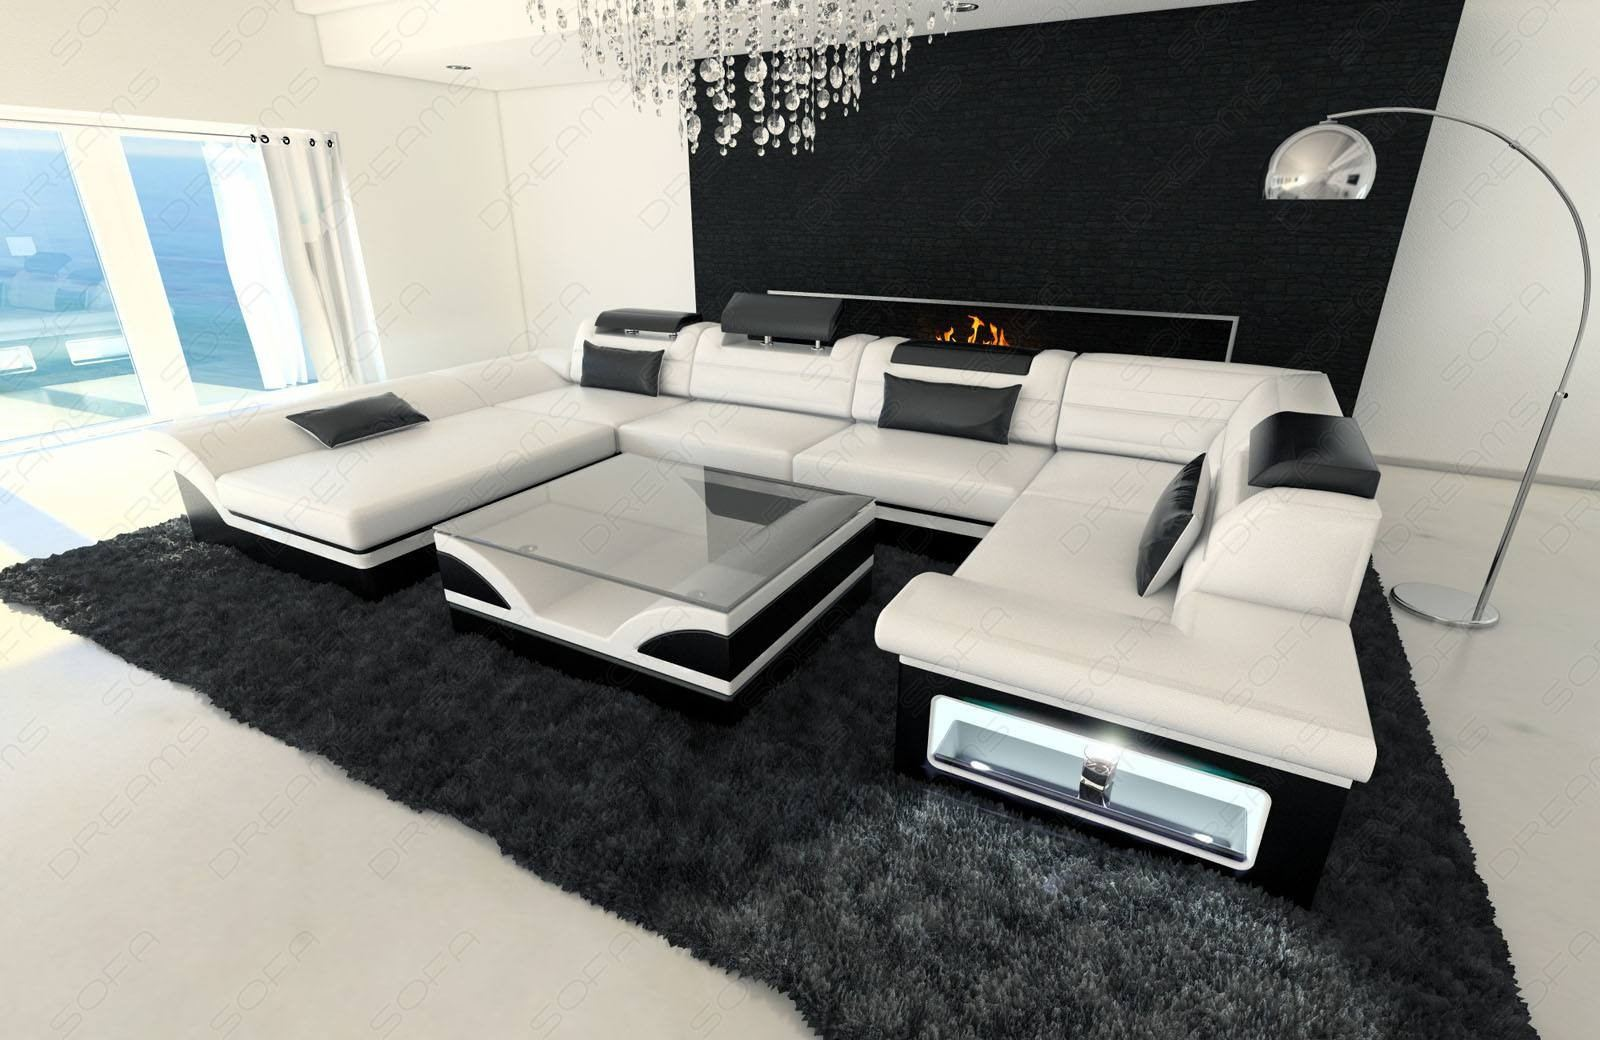 Big Leather Sofa Atlanta with LED Lights in white-black